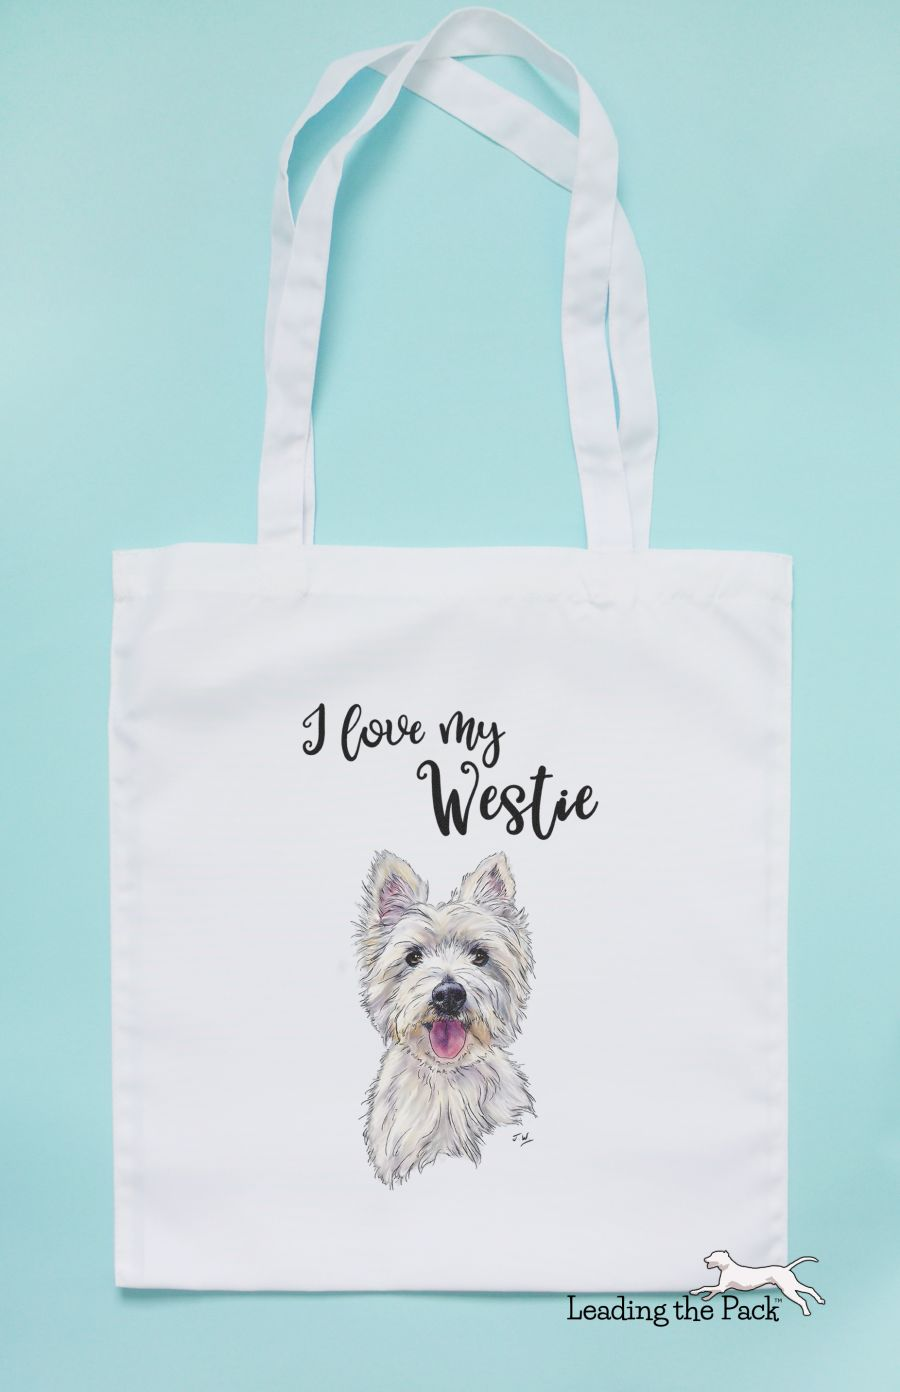 I love my westie tote bag